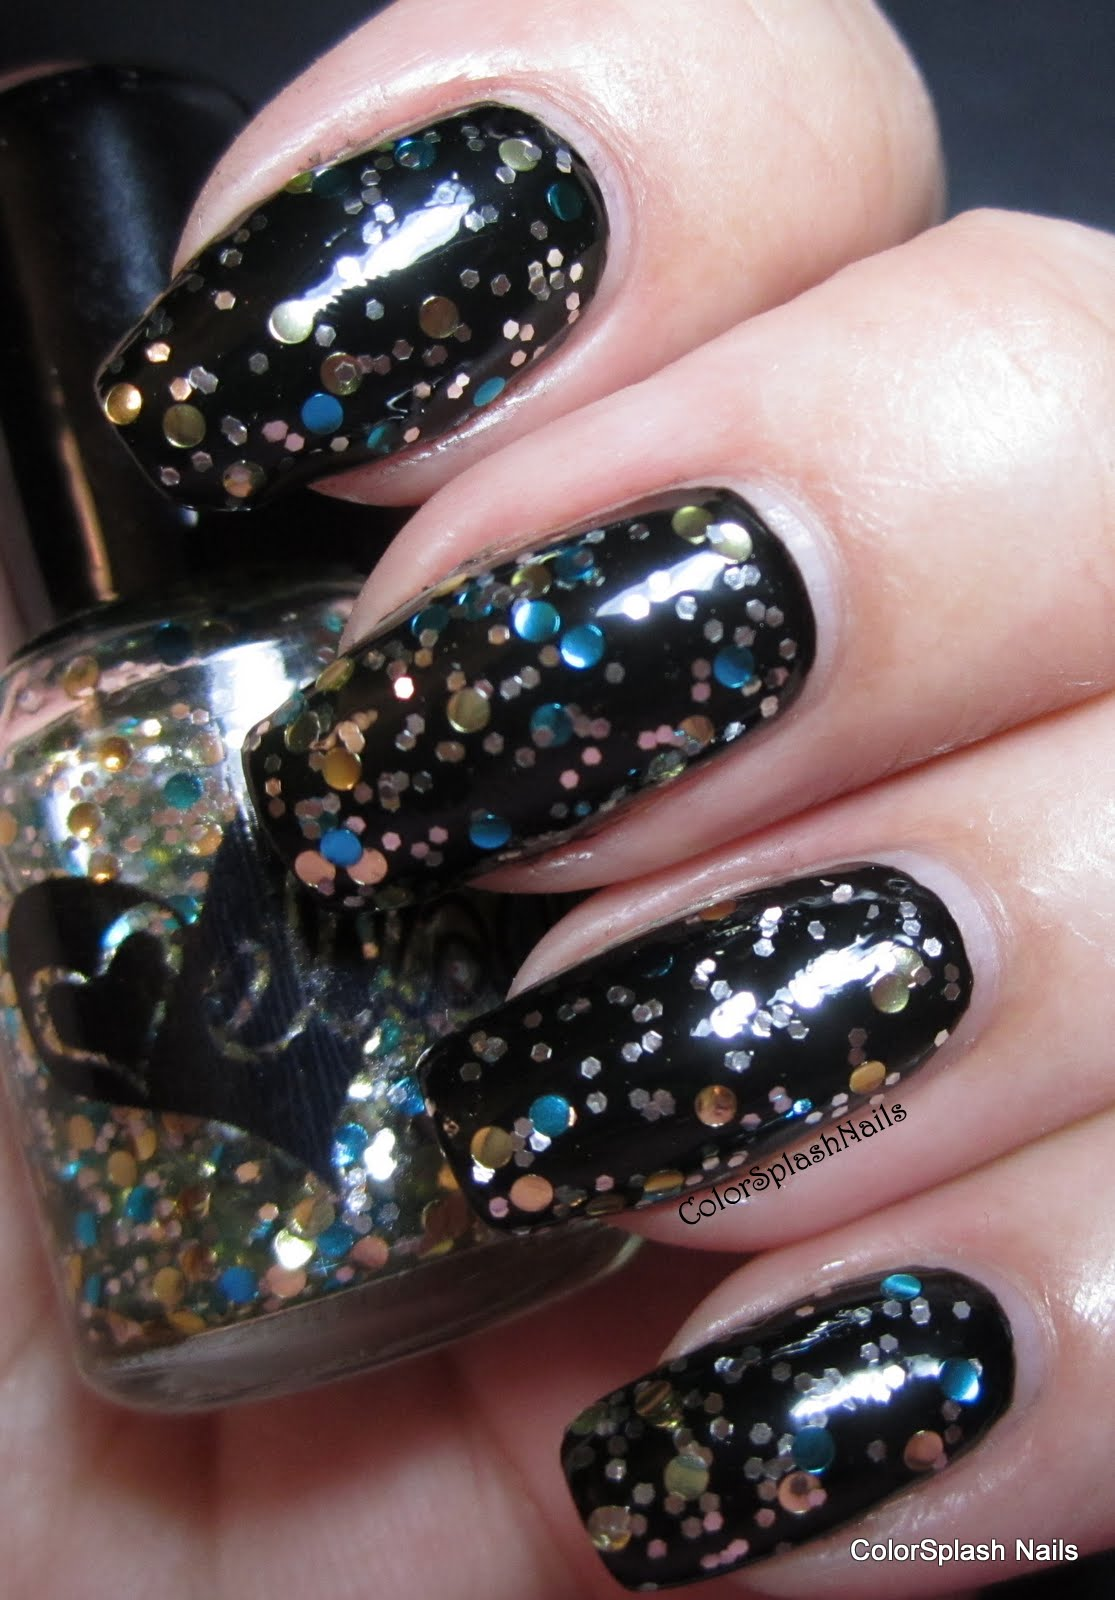 This Clear Based Topper Is Filled With Gold And Teal Circle Glitters That Work Over Almost Any Color